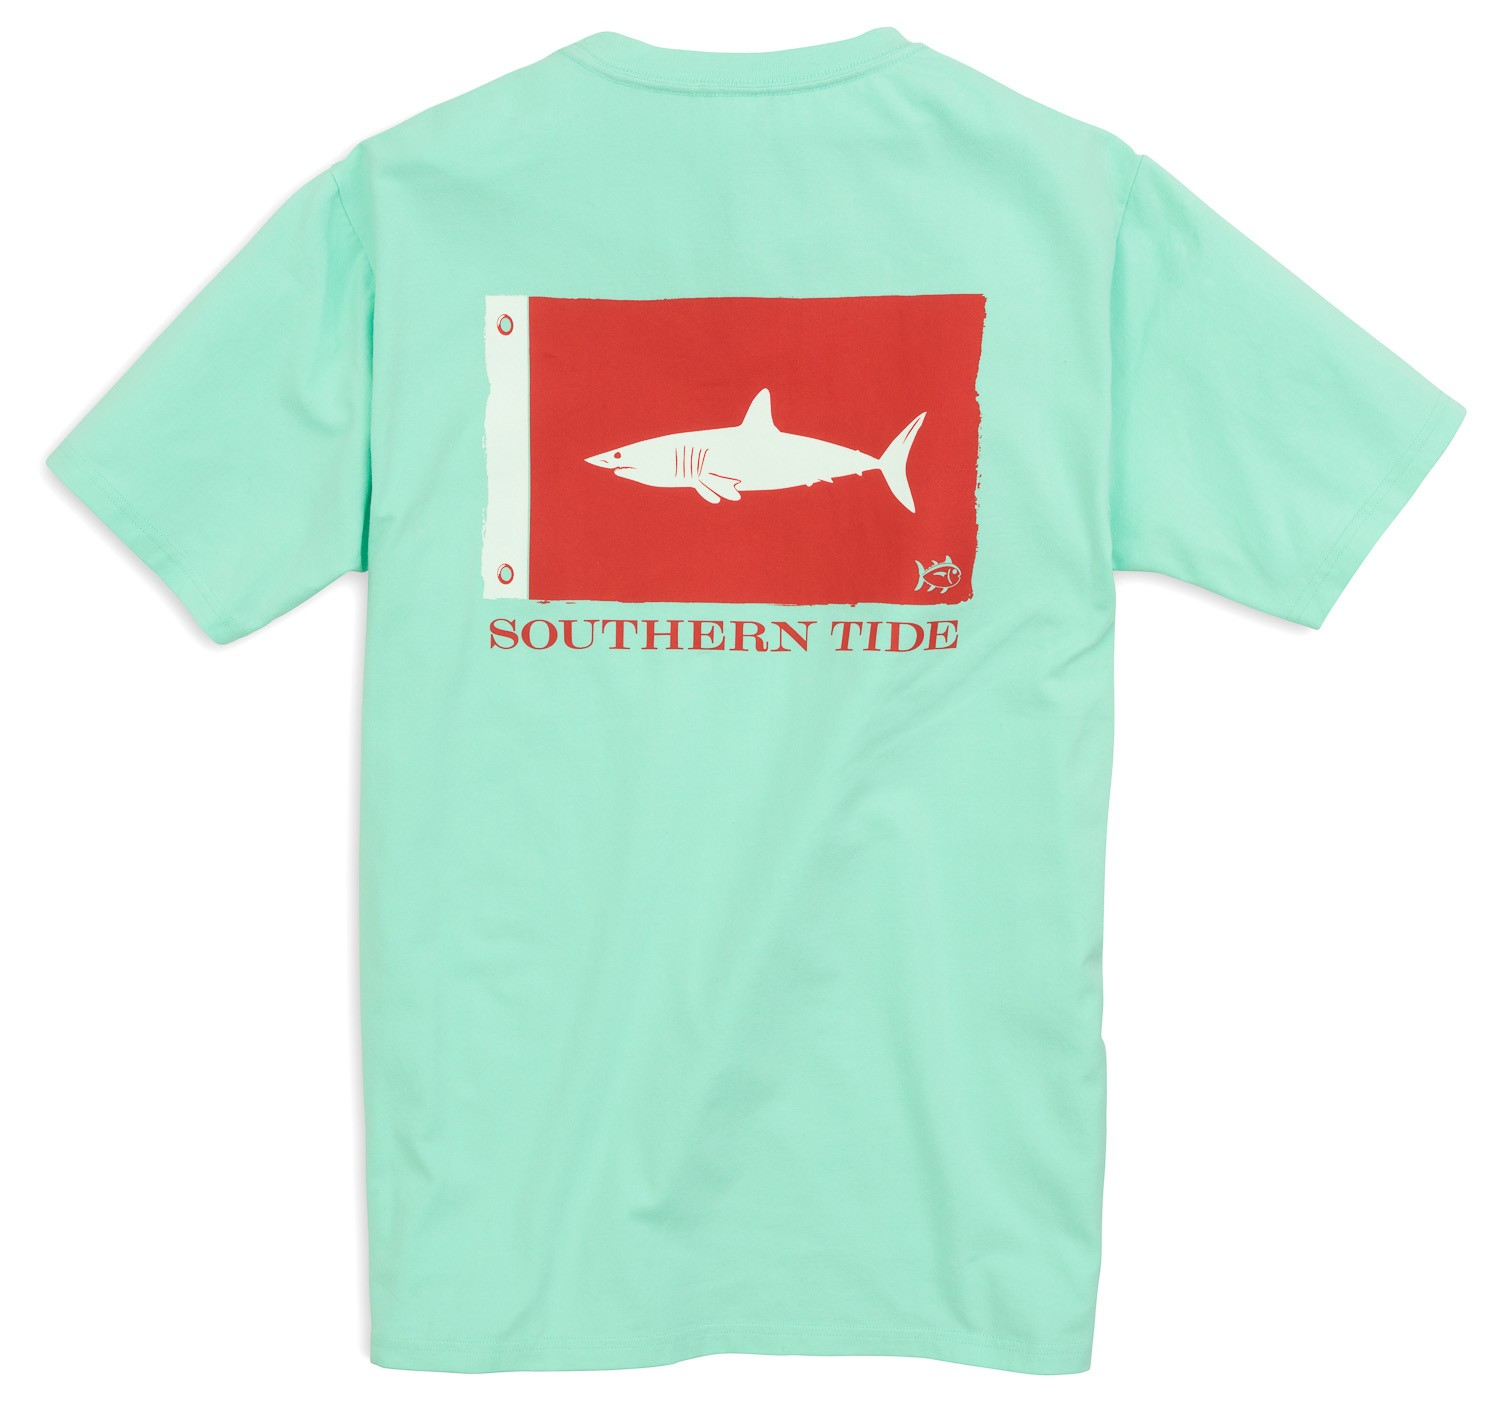 Catch Flags Shark T-Shirt - Southern Tide Apparel at Cahill & Swain